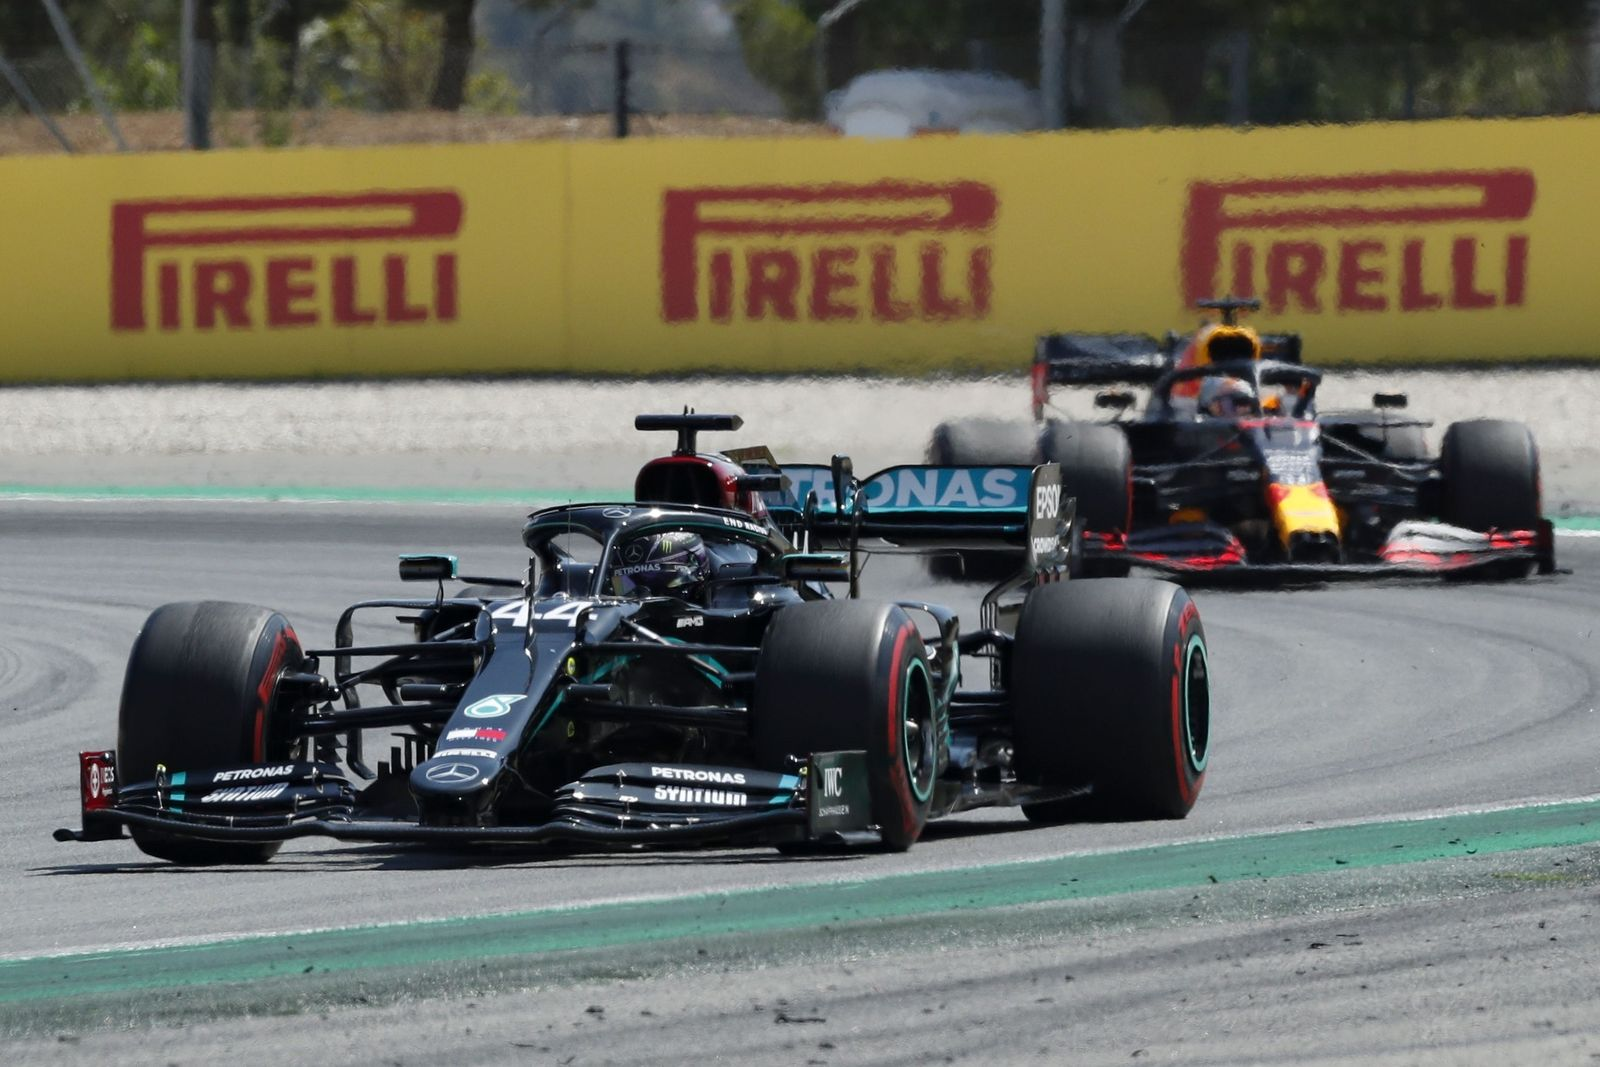 Formula One Grand Prix of Spain, Montmelo - 16 Aug 2020